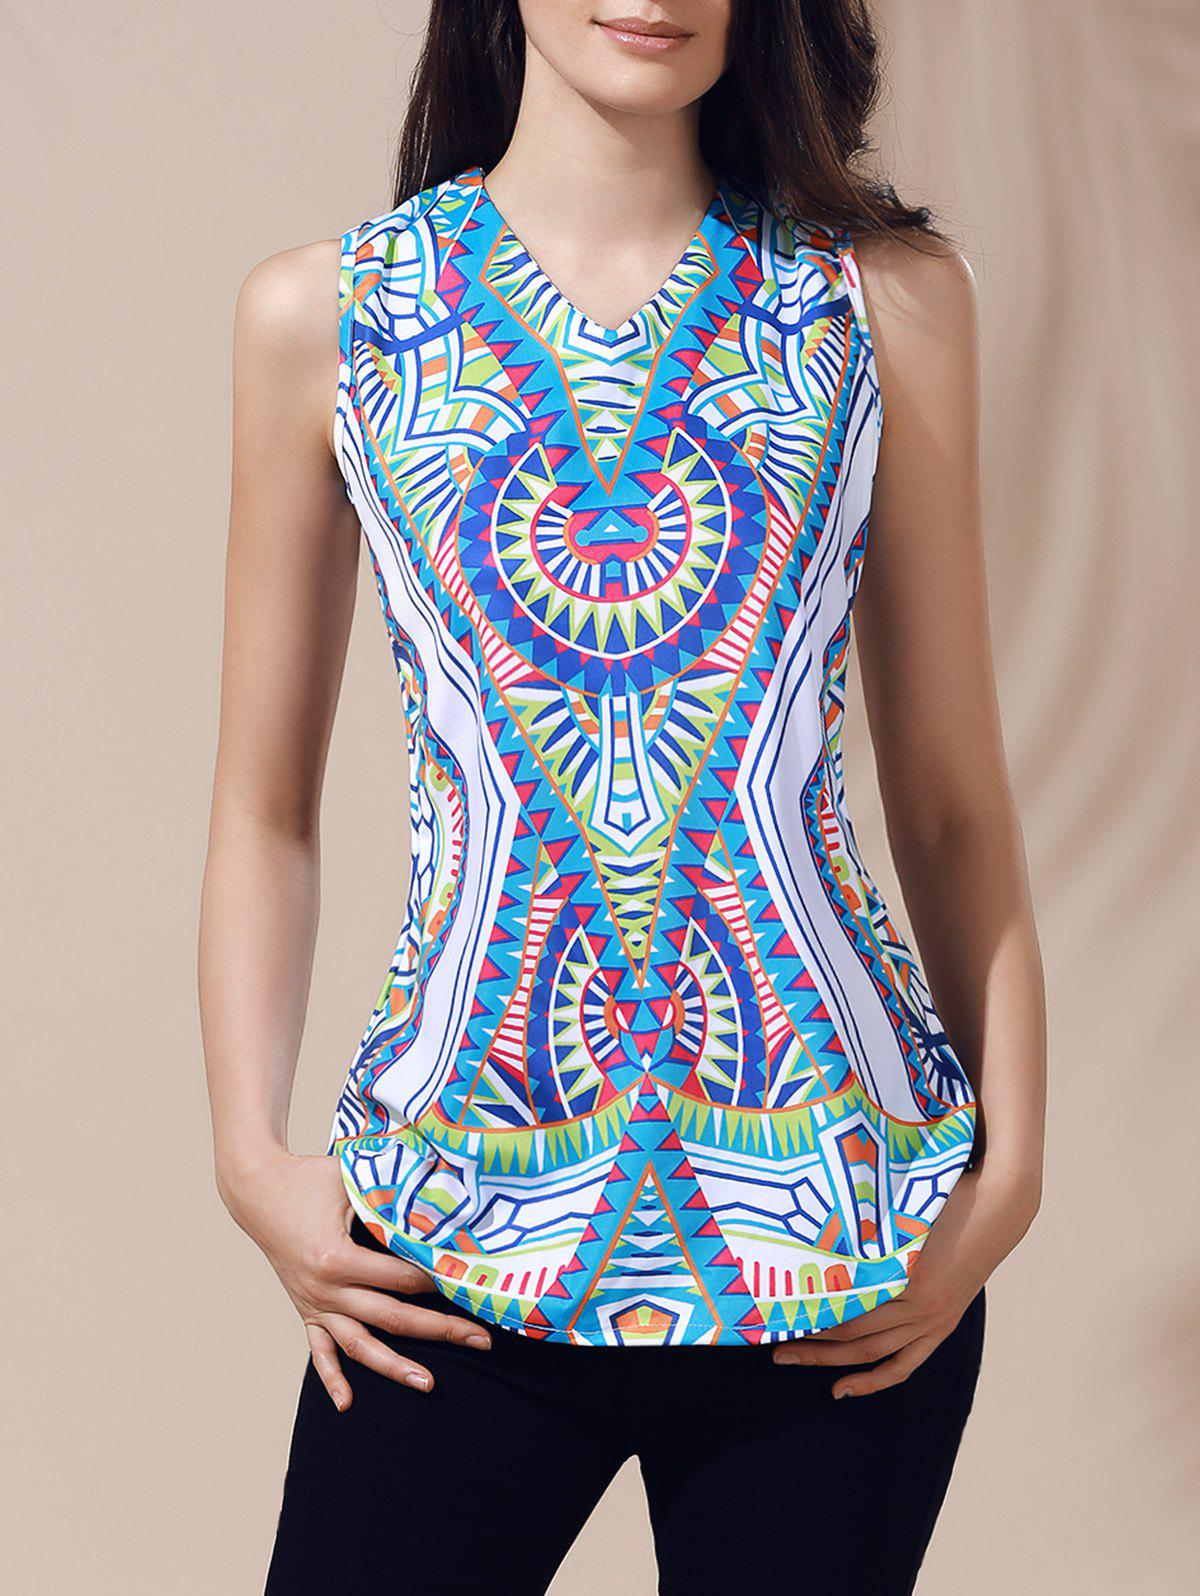 Ethnic Women's V-Neck Printed Cut Out Top - S GREEN